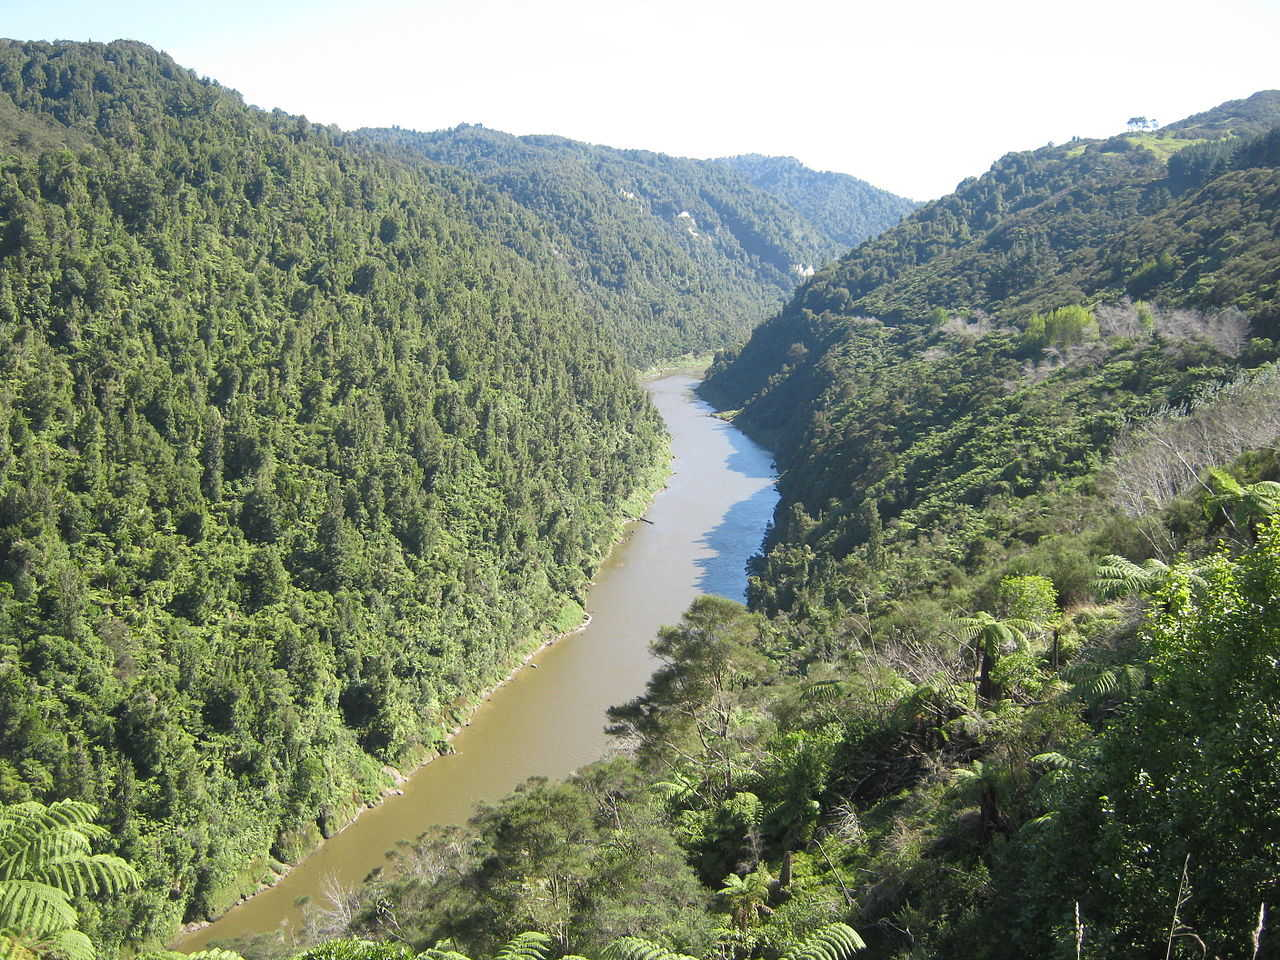 https://commons.wikimedia.org/wiki/File:Whanganui-River-01.jpg